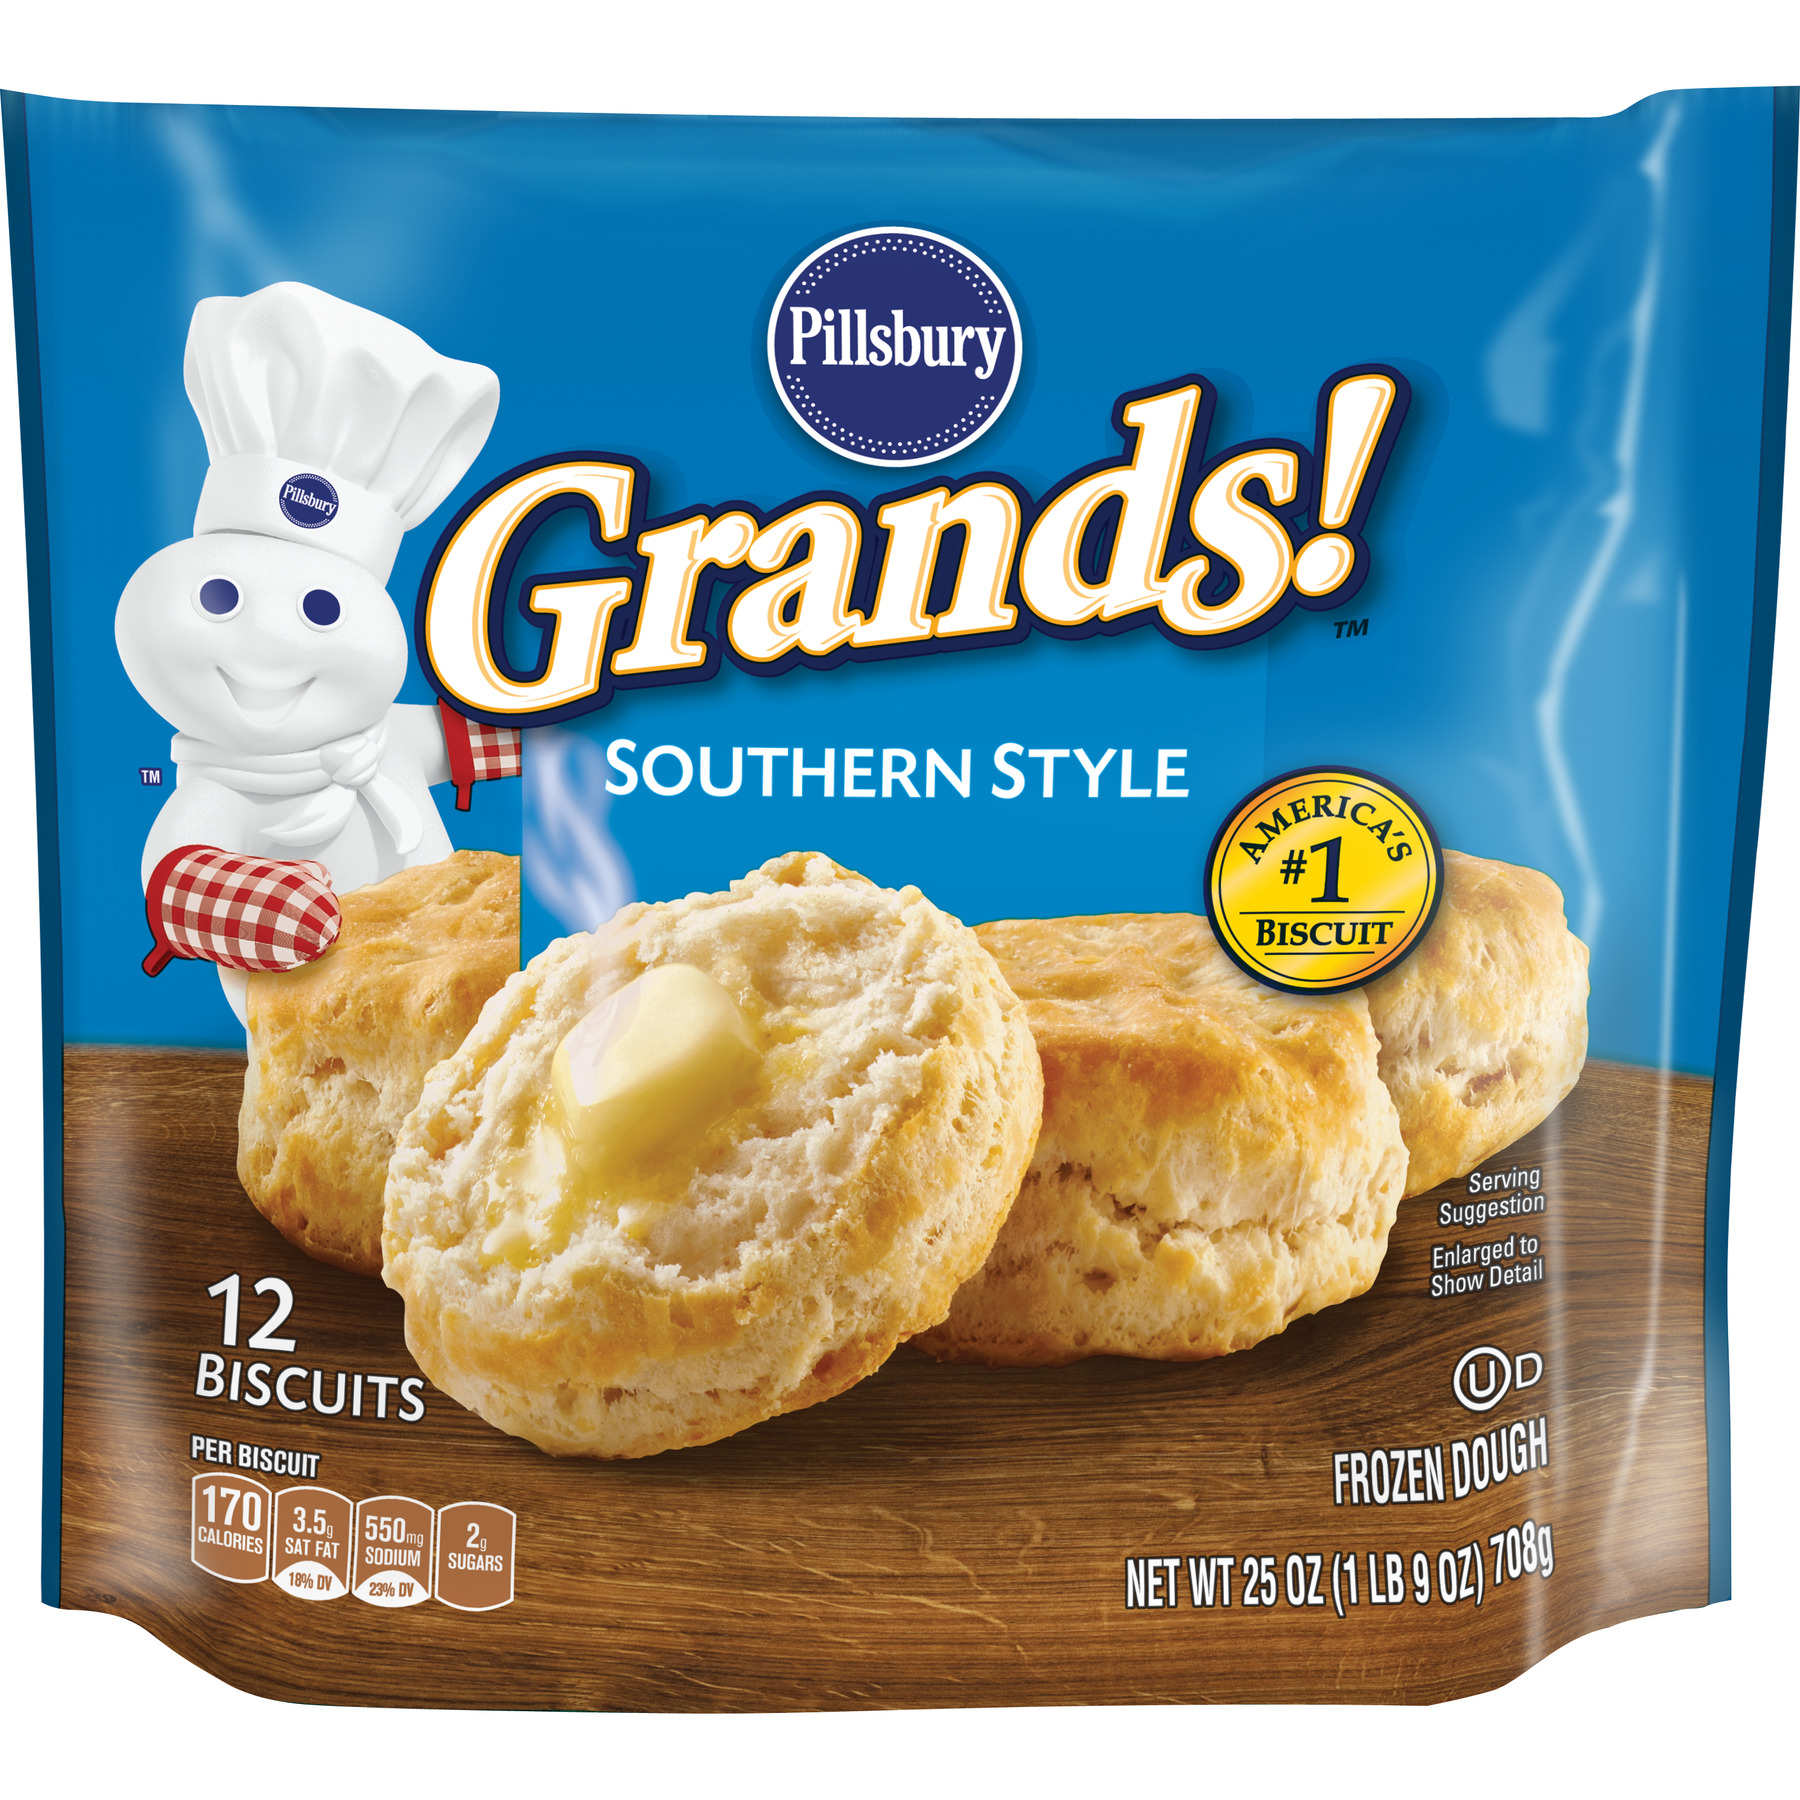 Pillsbury Grands! Southern Style Biscuits, 12 Ct, 25 oz